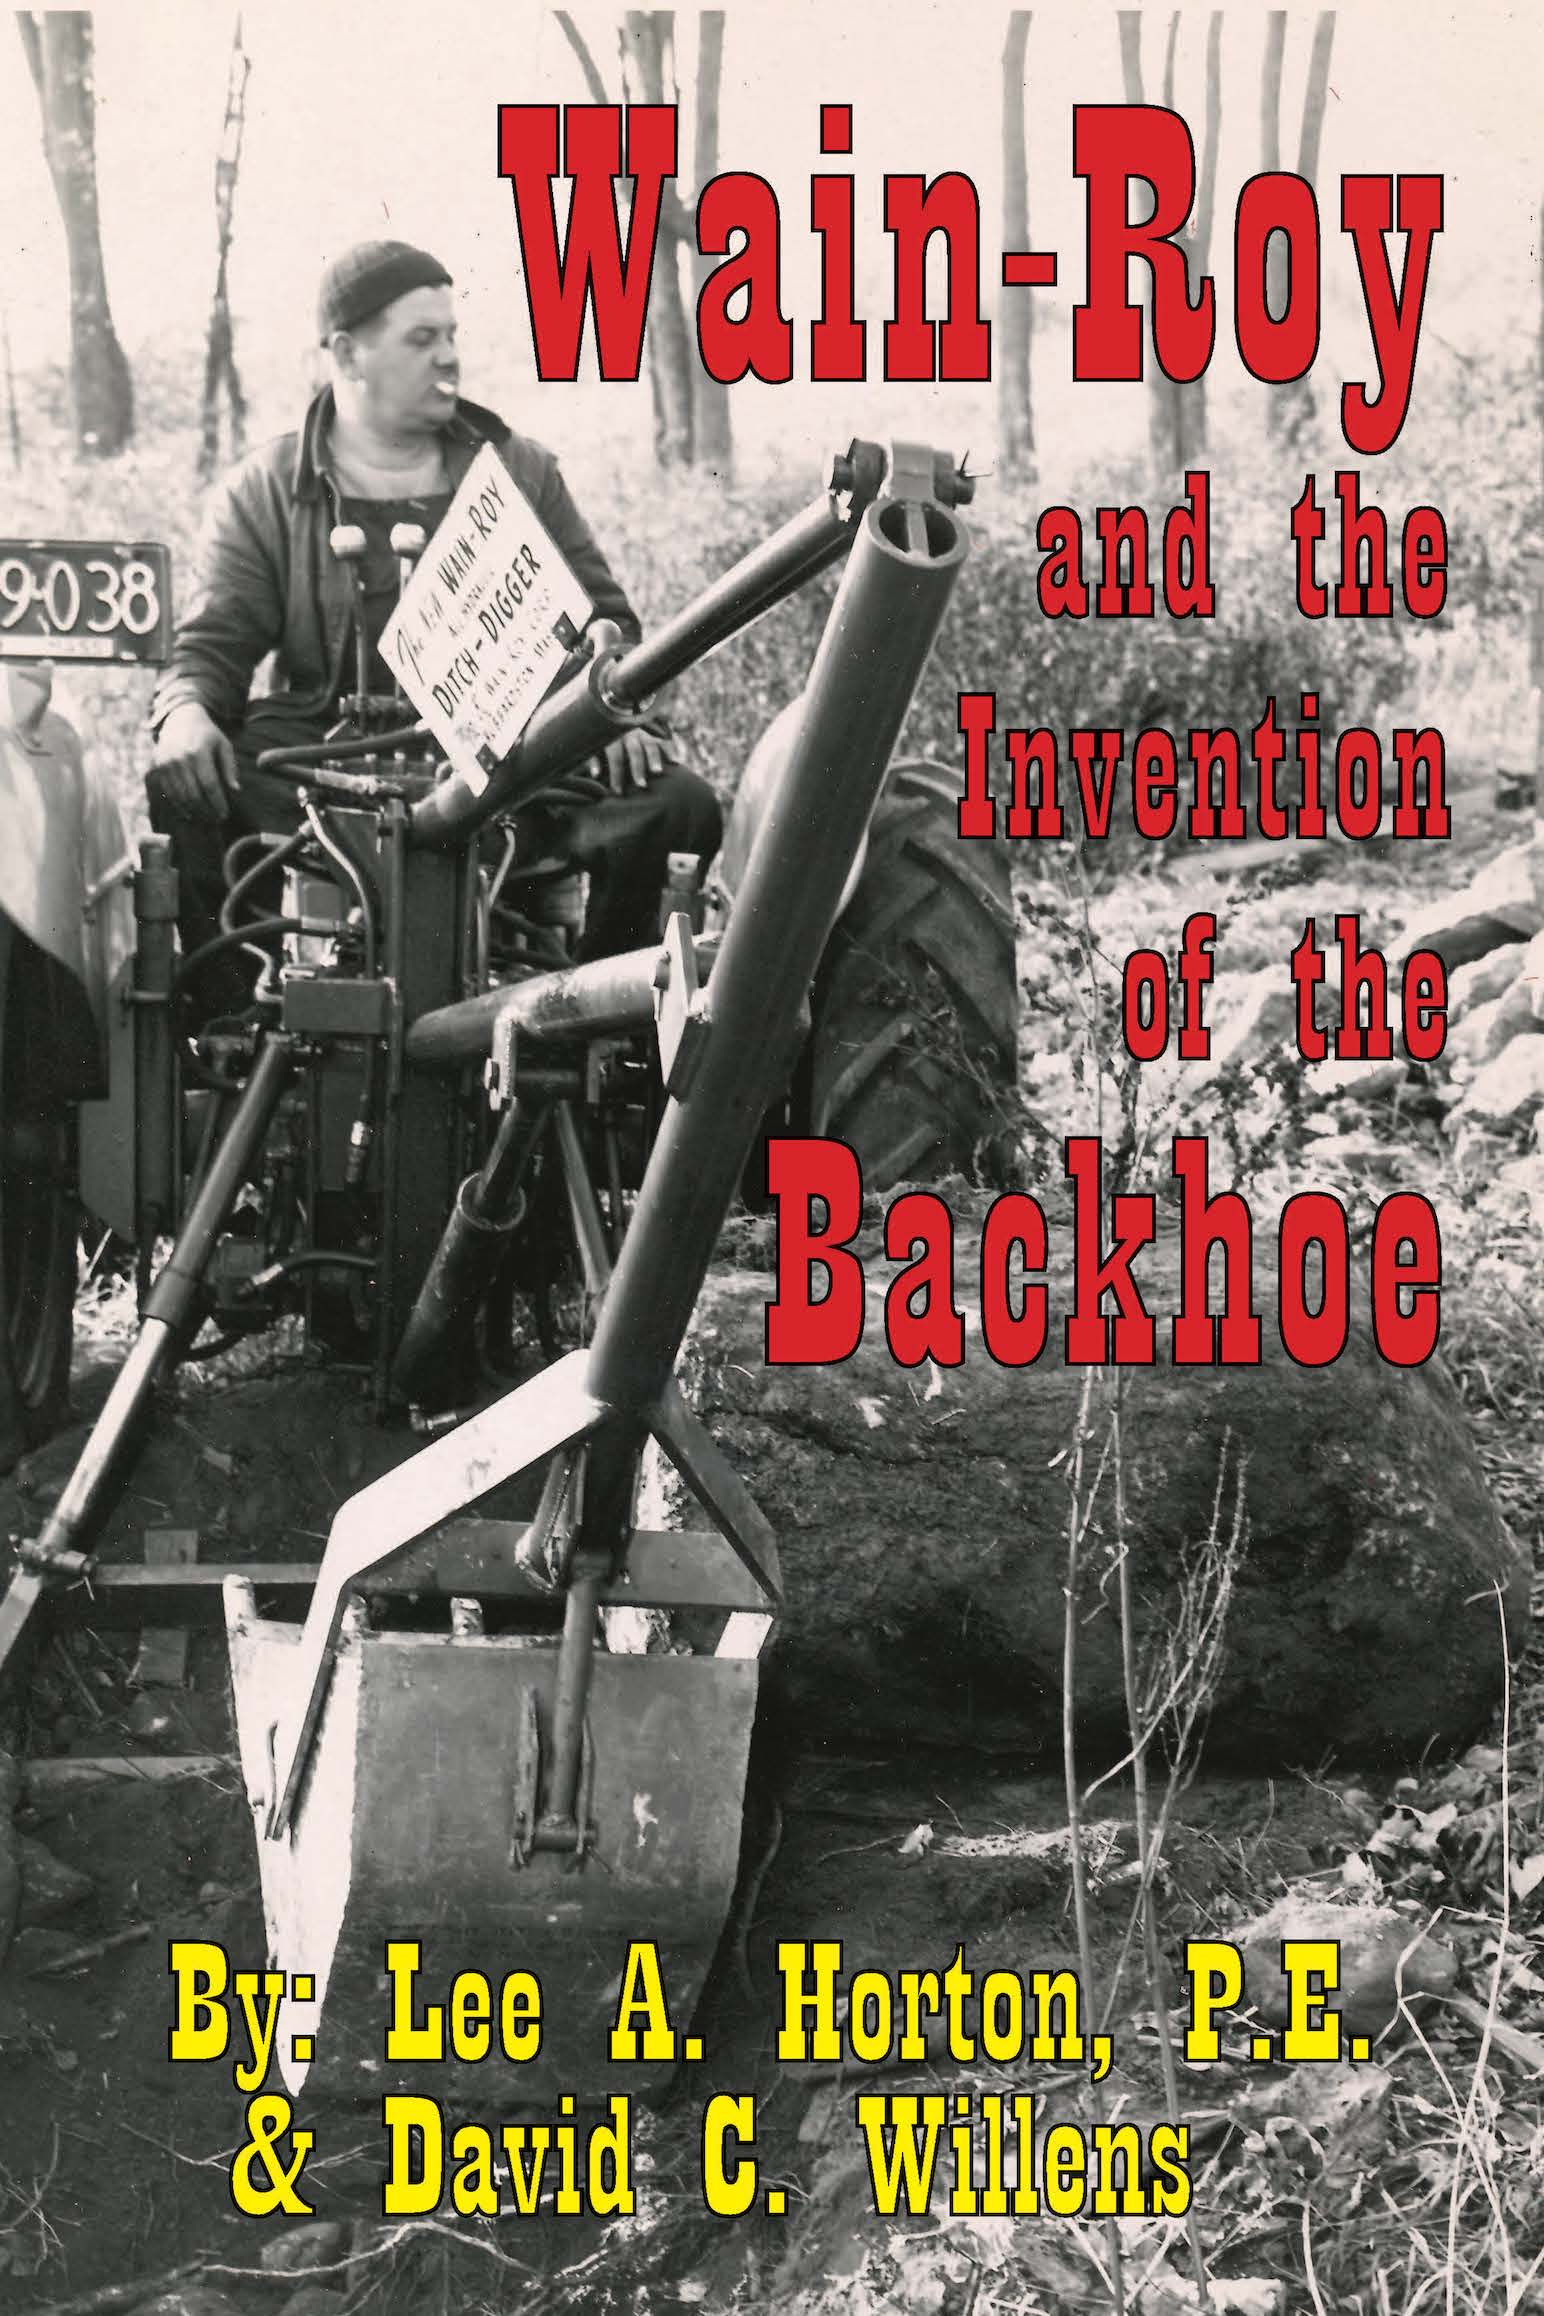 """Ardent Case Construction Equipment and JCB fans might want to steer clear of a new book from Lee A. Horton, P.E., and David C. Willens, which maintains Vaino (pronounced """"Waino"""") J. Holopainen and Roy E. Handy Jr., of Hubbardston, Mass., developed the world's first backhoe in 1947."""